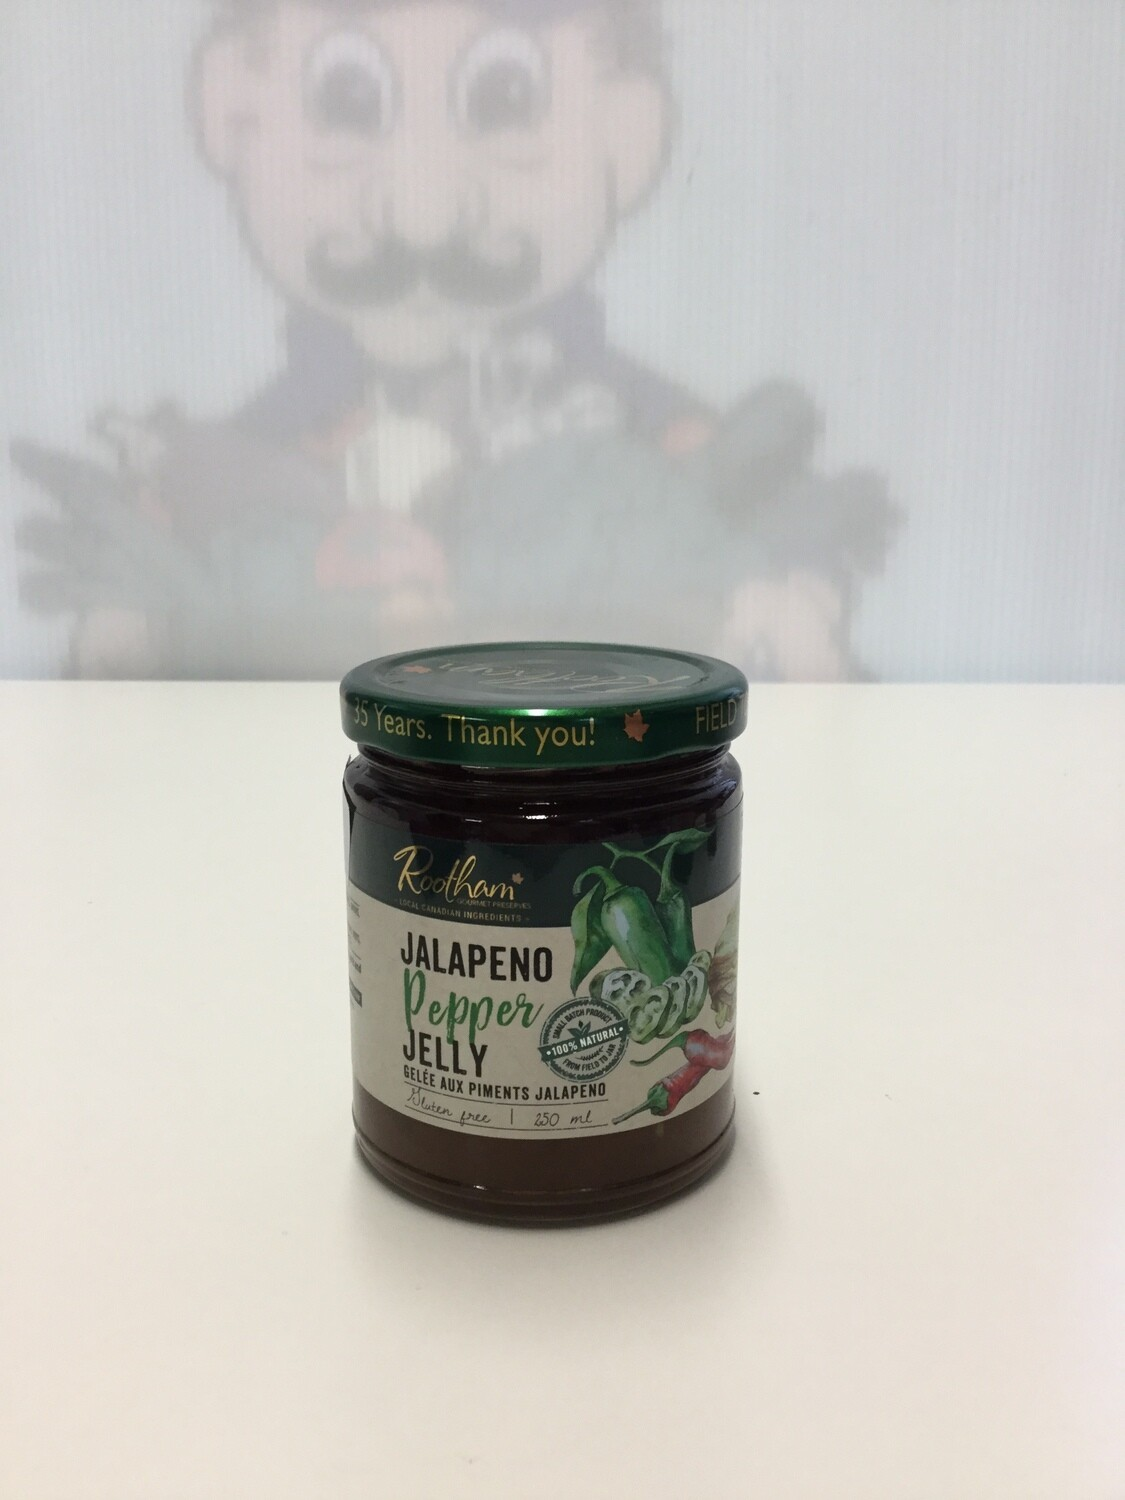 ROOTHAMS Jalapeno Pepper Jelly 250ml